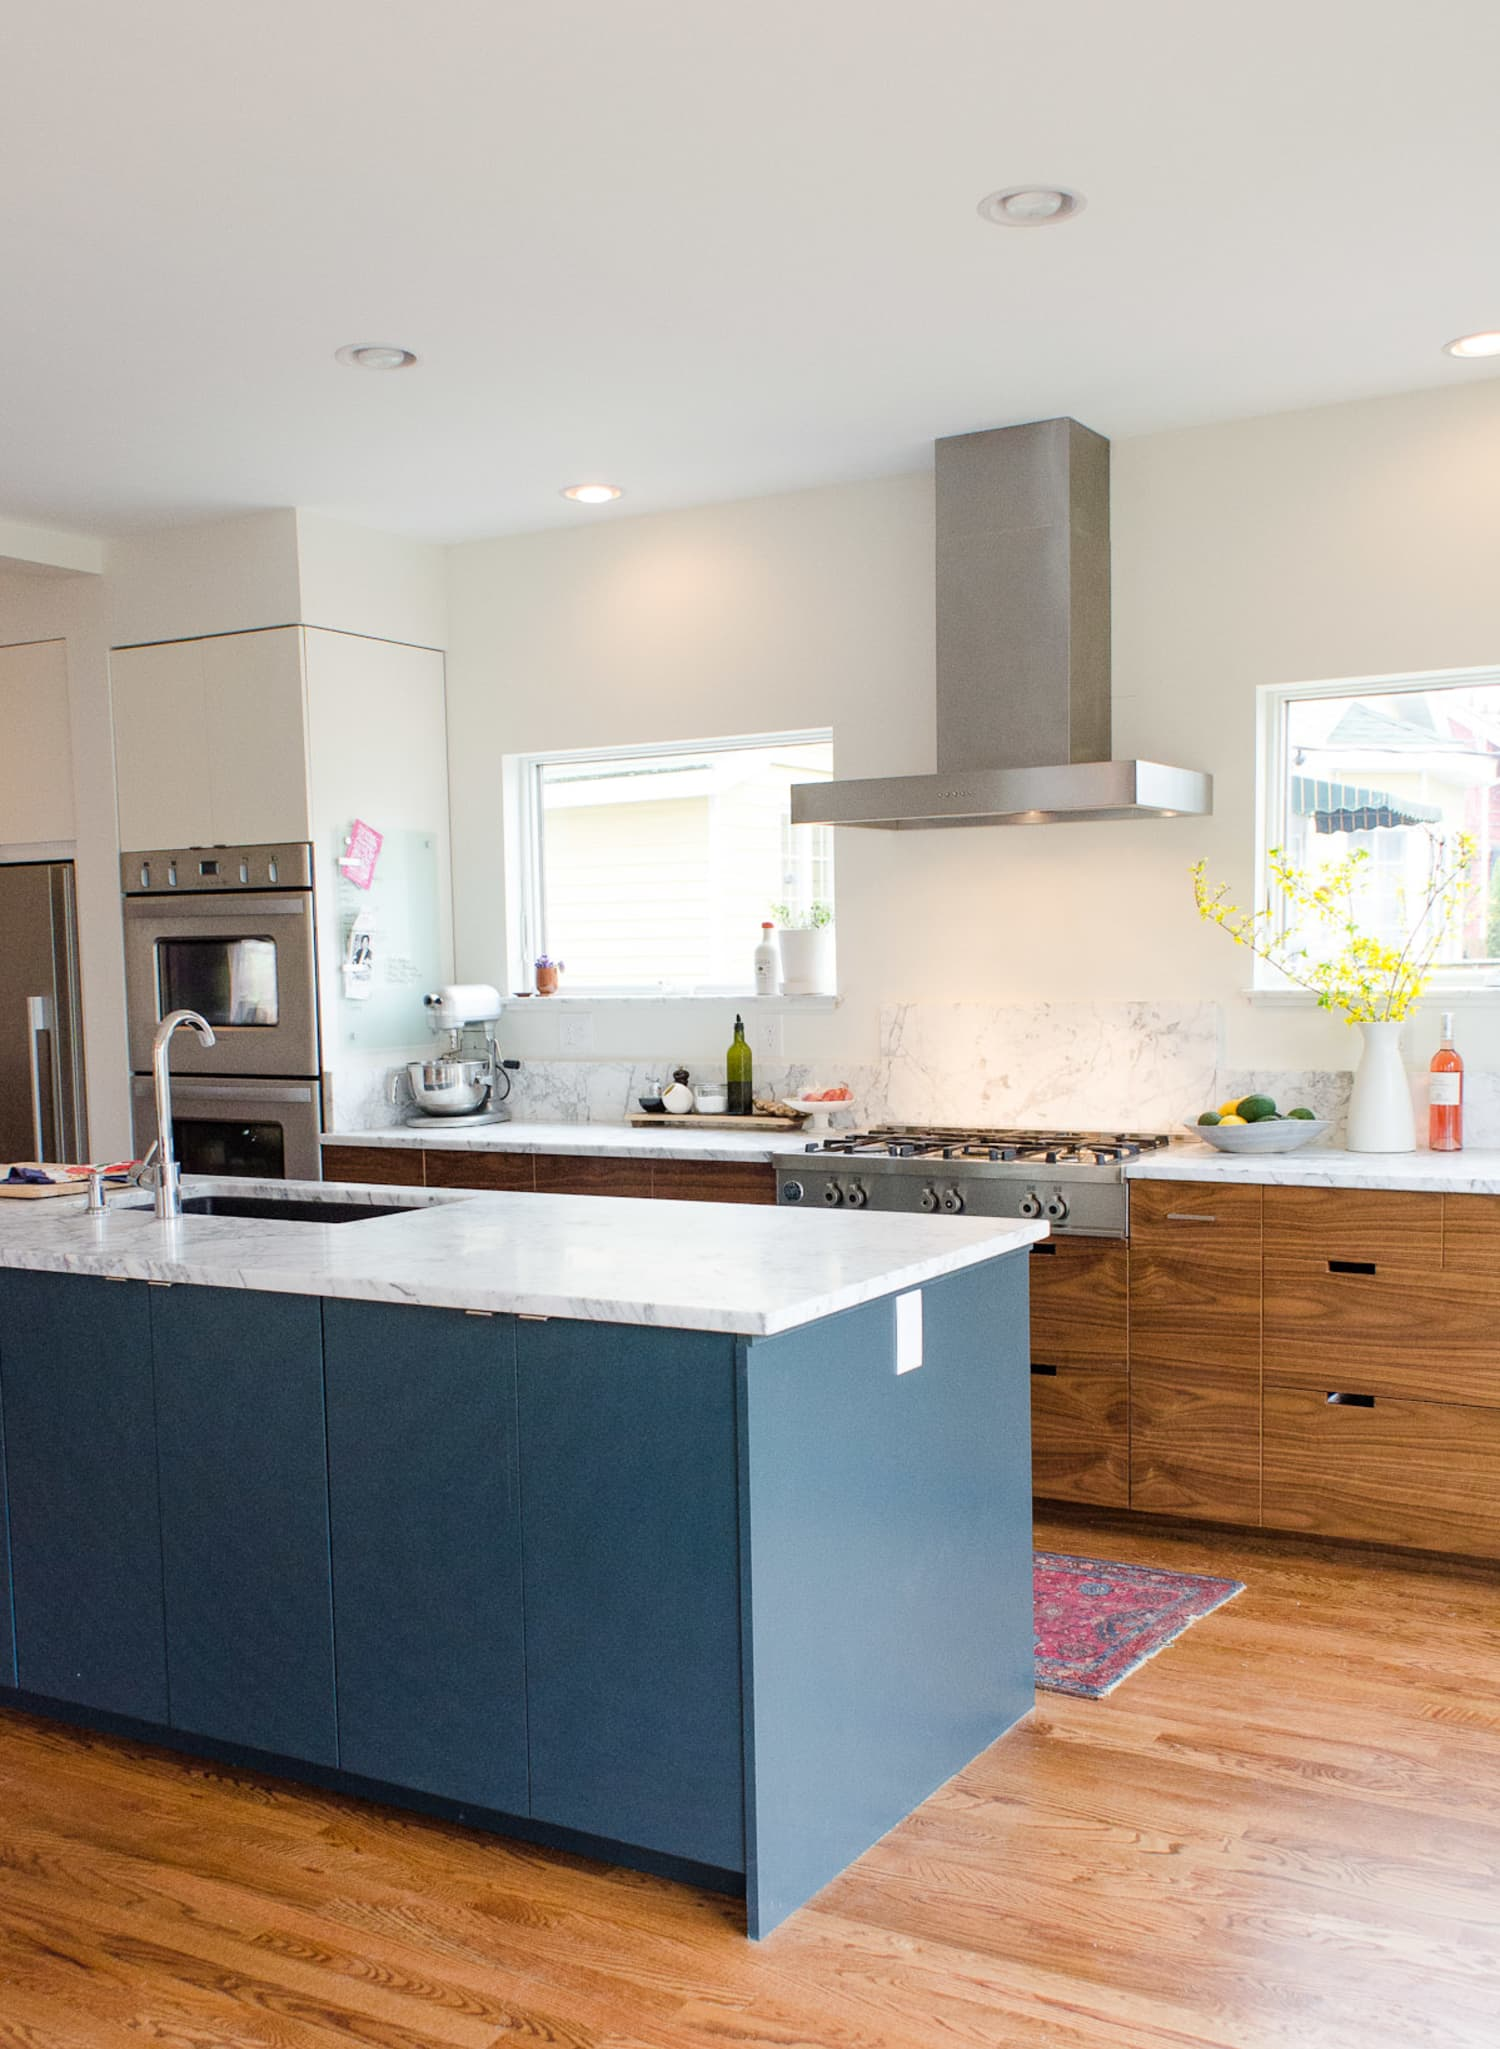 IKEA Kitchen Review - Remodel Cost, Cabinets Quality | Kitchn